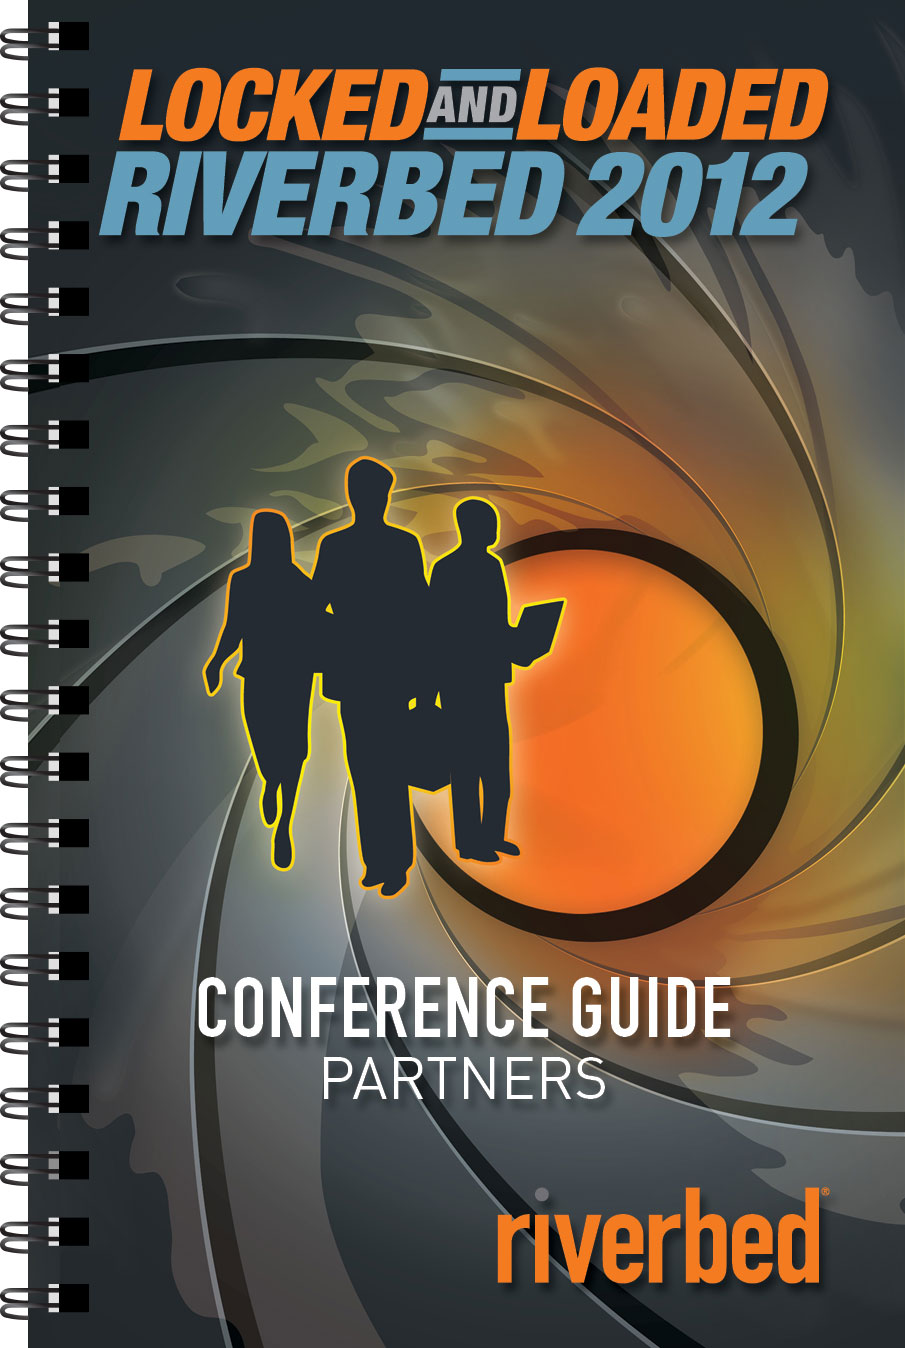 Riverbed SKO Partner Conference Guide